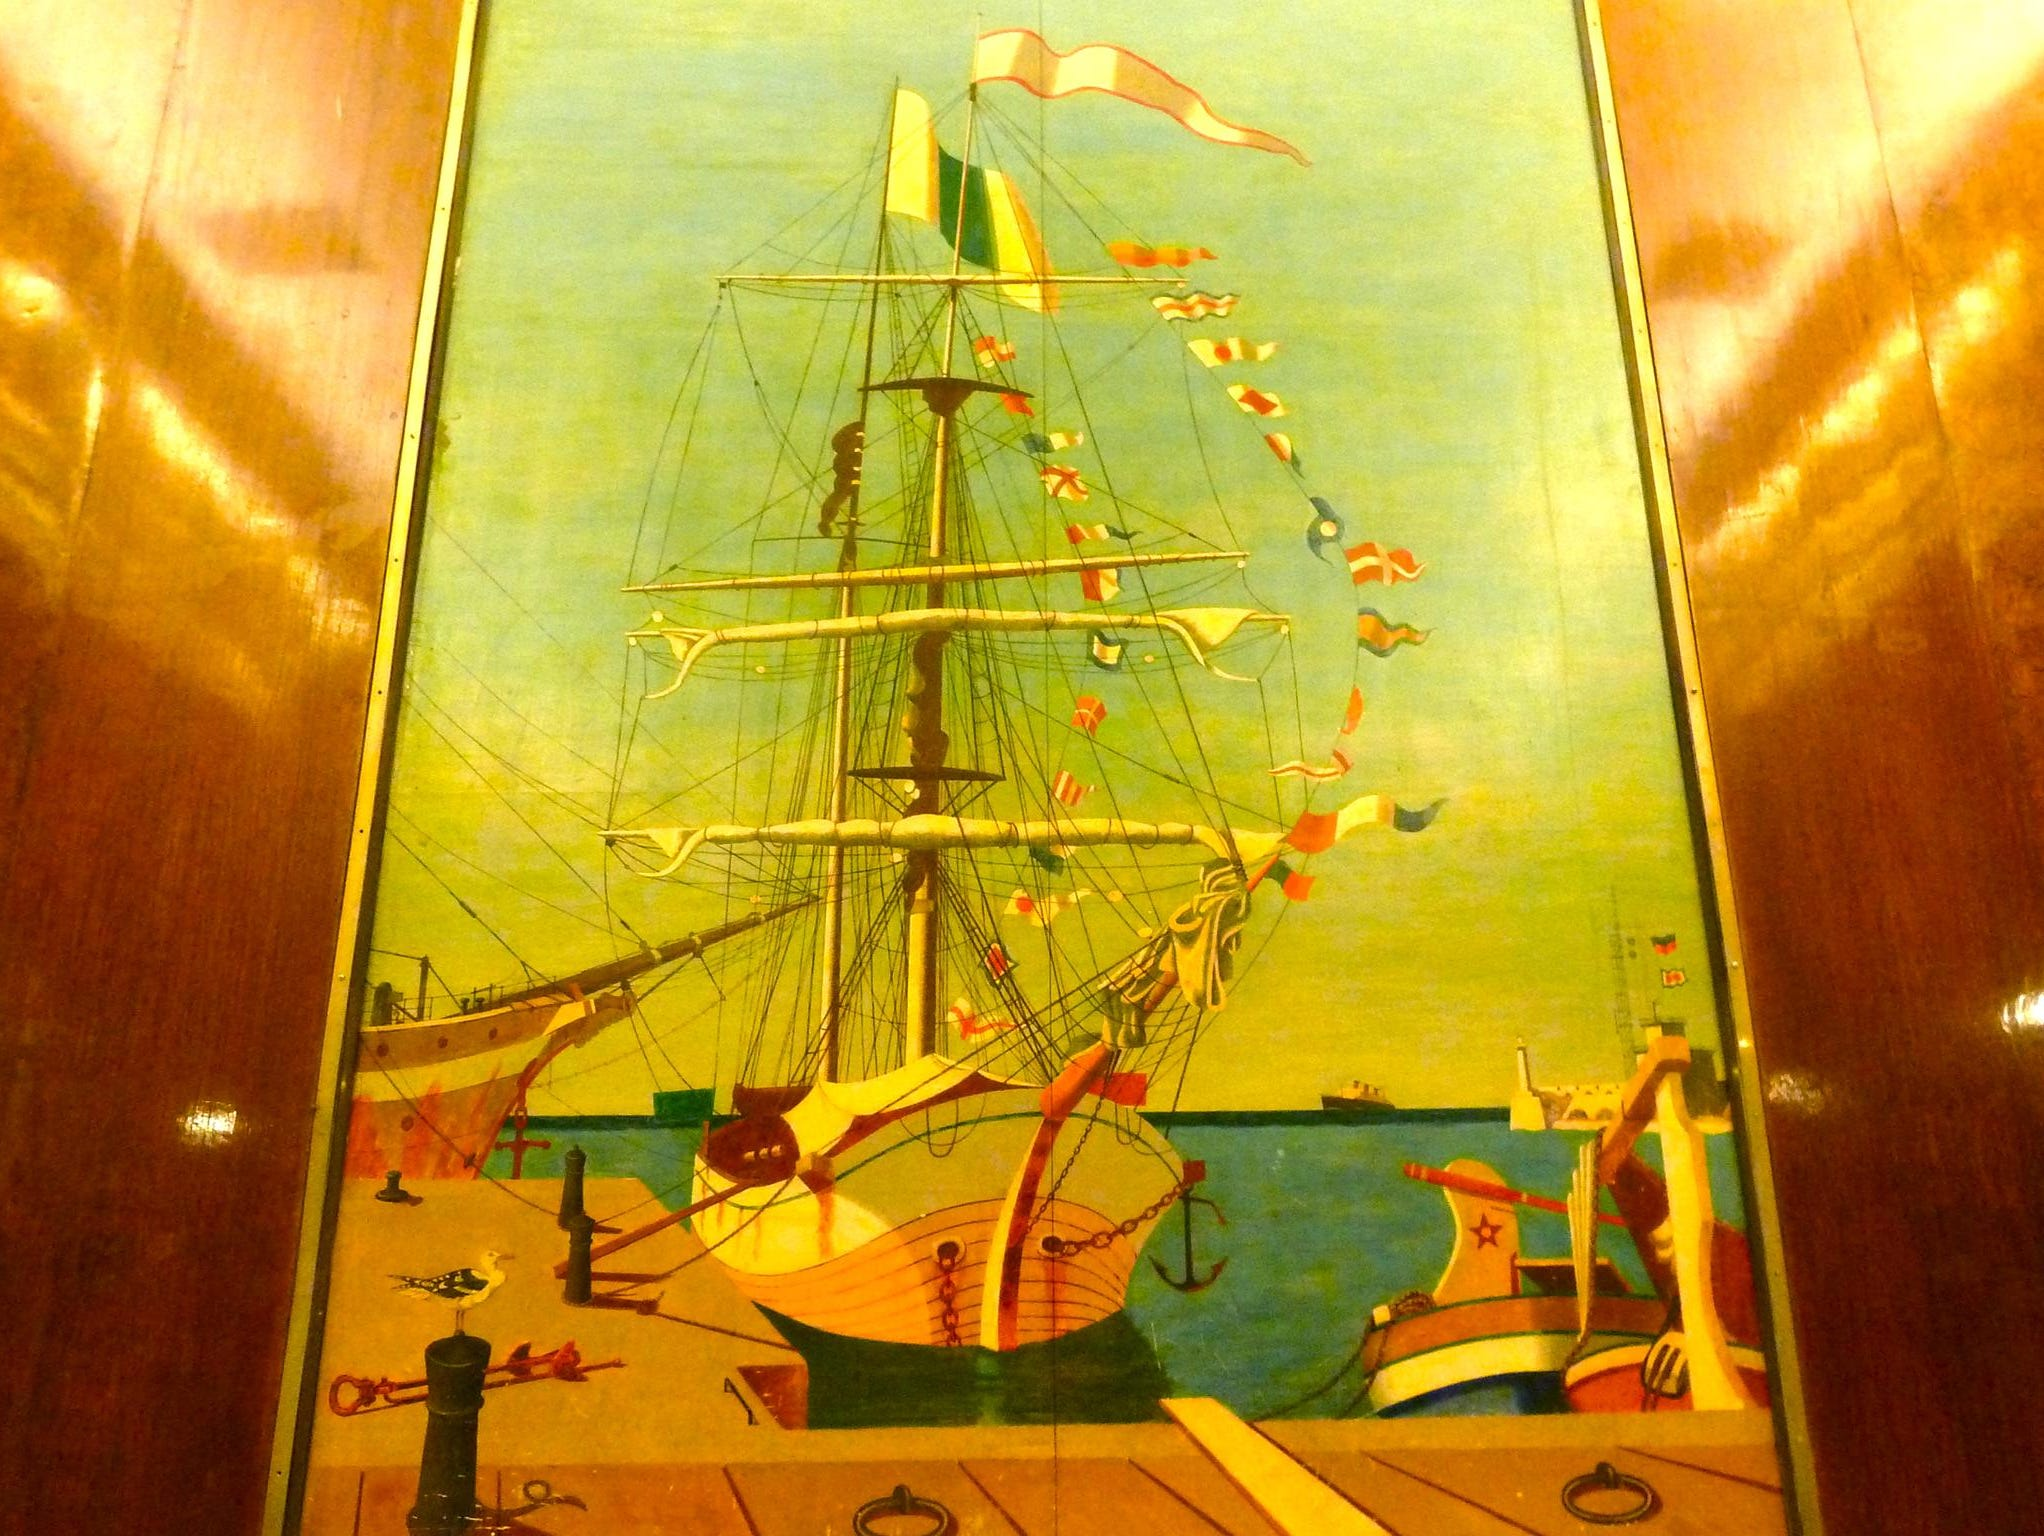 This is a view of the Royal Salon's forward Wadsworth painting. On the horizon, to the right of the sailing ship in the center, is an approaching Queen Mary. Other highlights in the room are the silvered bronze grating and acid-etched glass lighting fixtures.